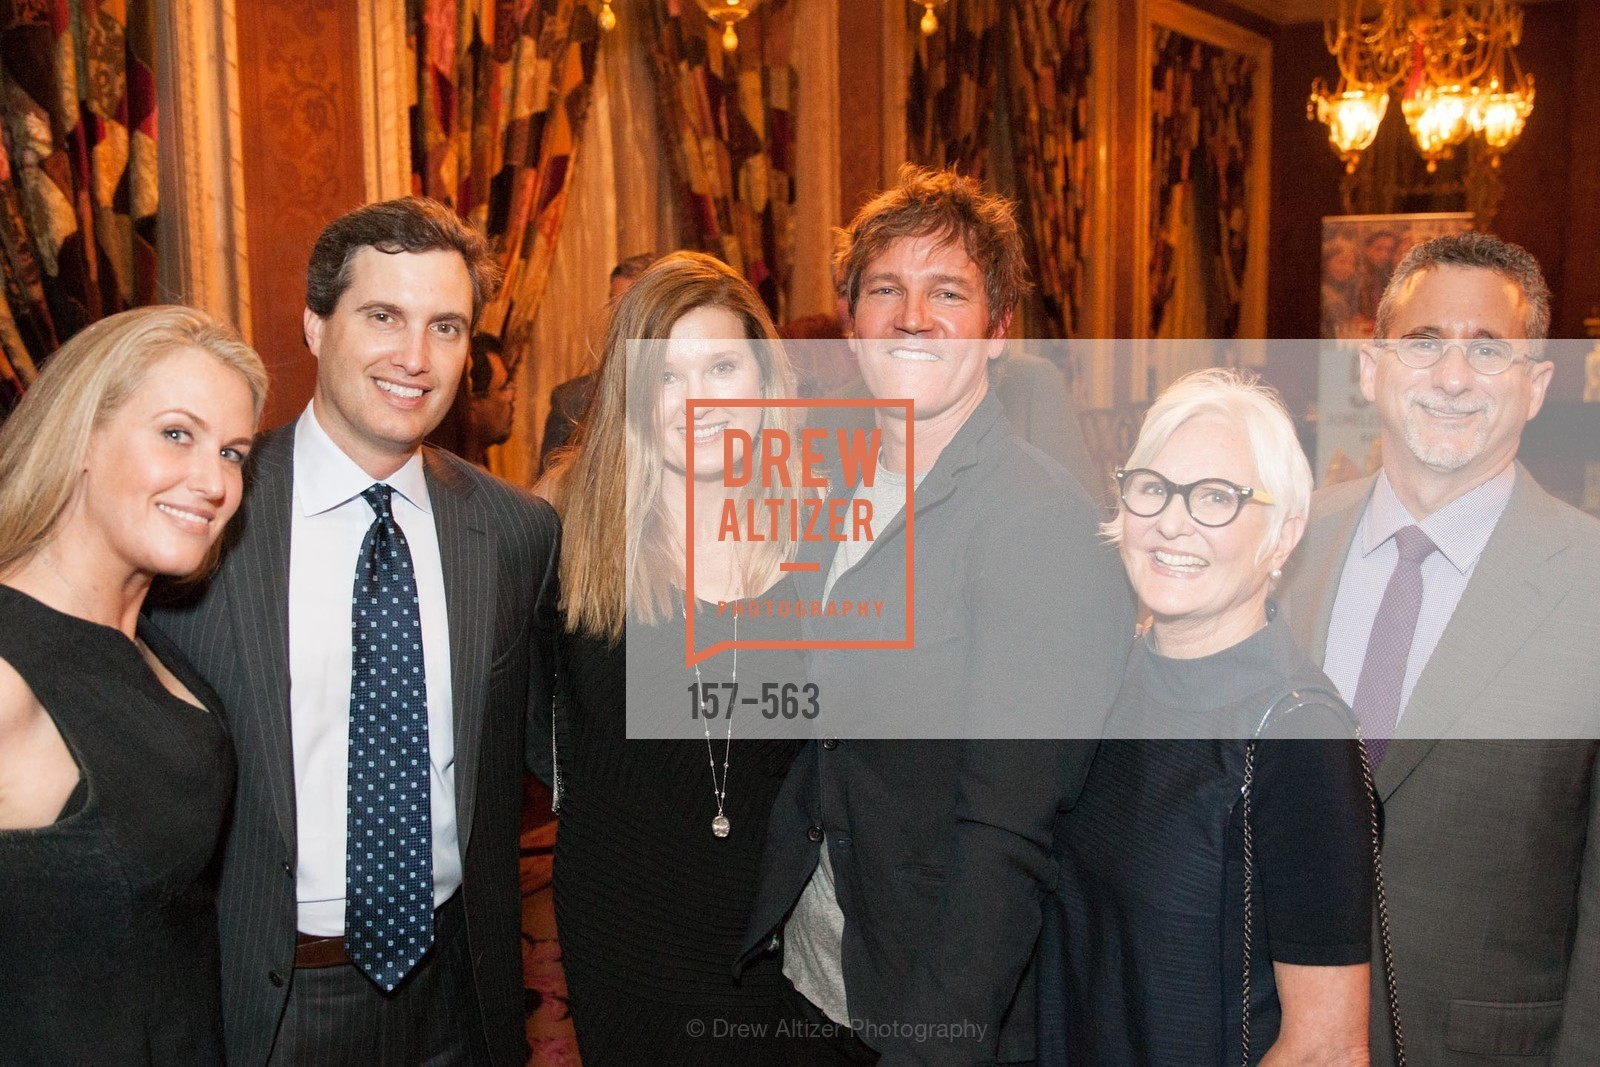 Ann Iannuccillo, John Iannuccillo, Jane von Bothmer, Stephan Jenkins, Mary Scott, Jeff Kositsky, HAMILTON FAMILY CENTER Top Donor Cocktail Reception, US, September 10th, 2014,Drew Altizer, Drew Altizer Photography, full-service event agency, private events, San Francisco photographer, photographer California